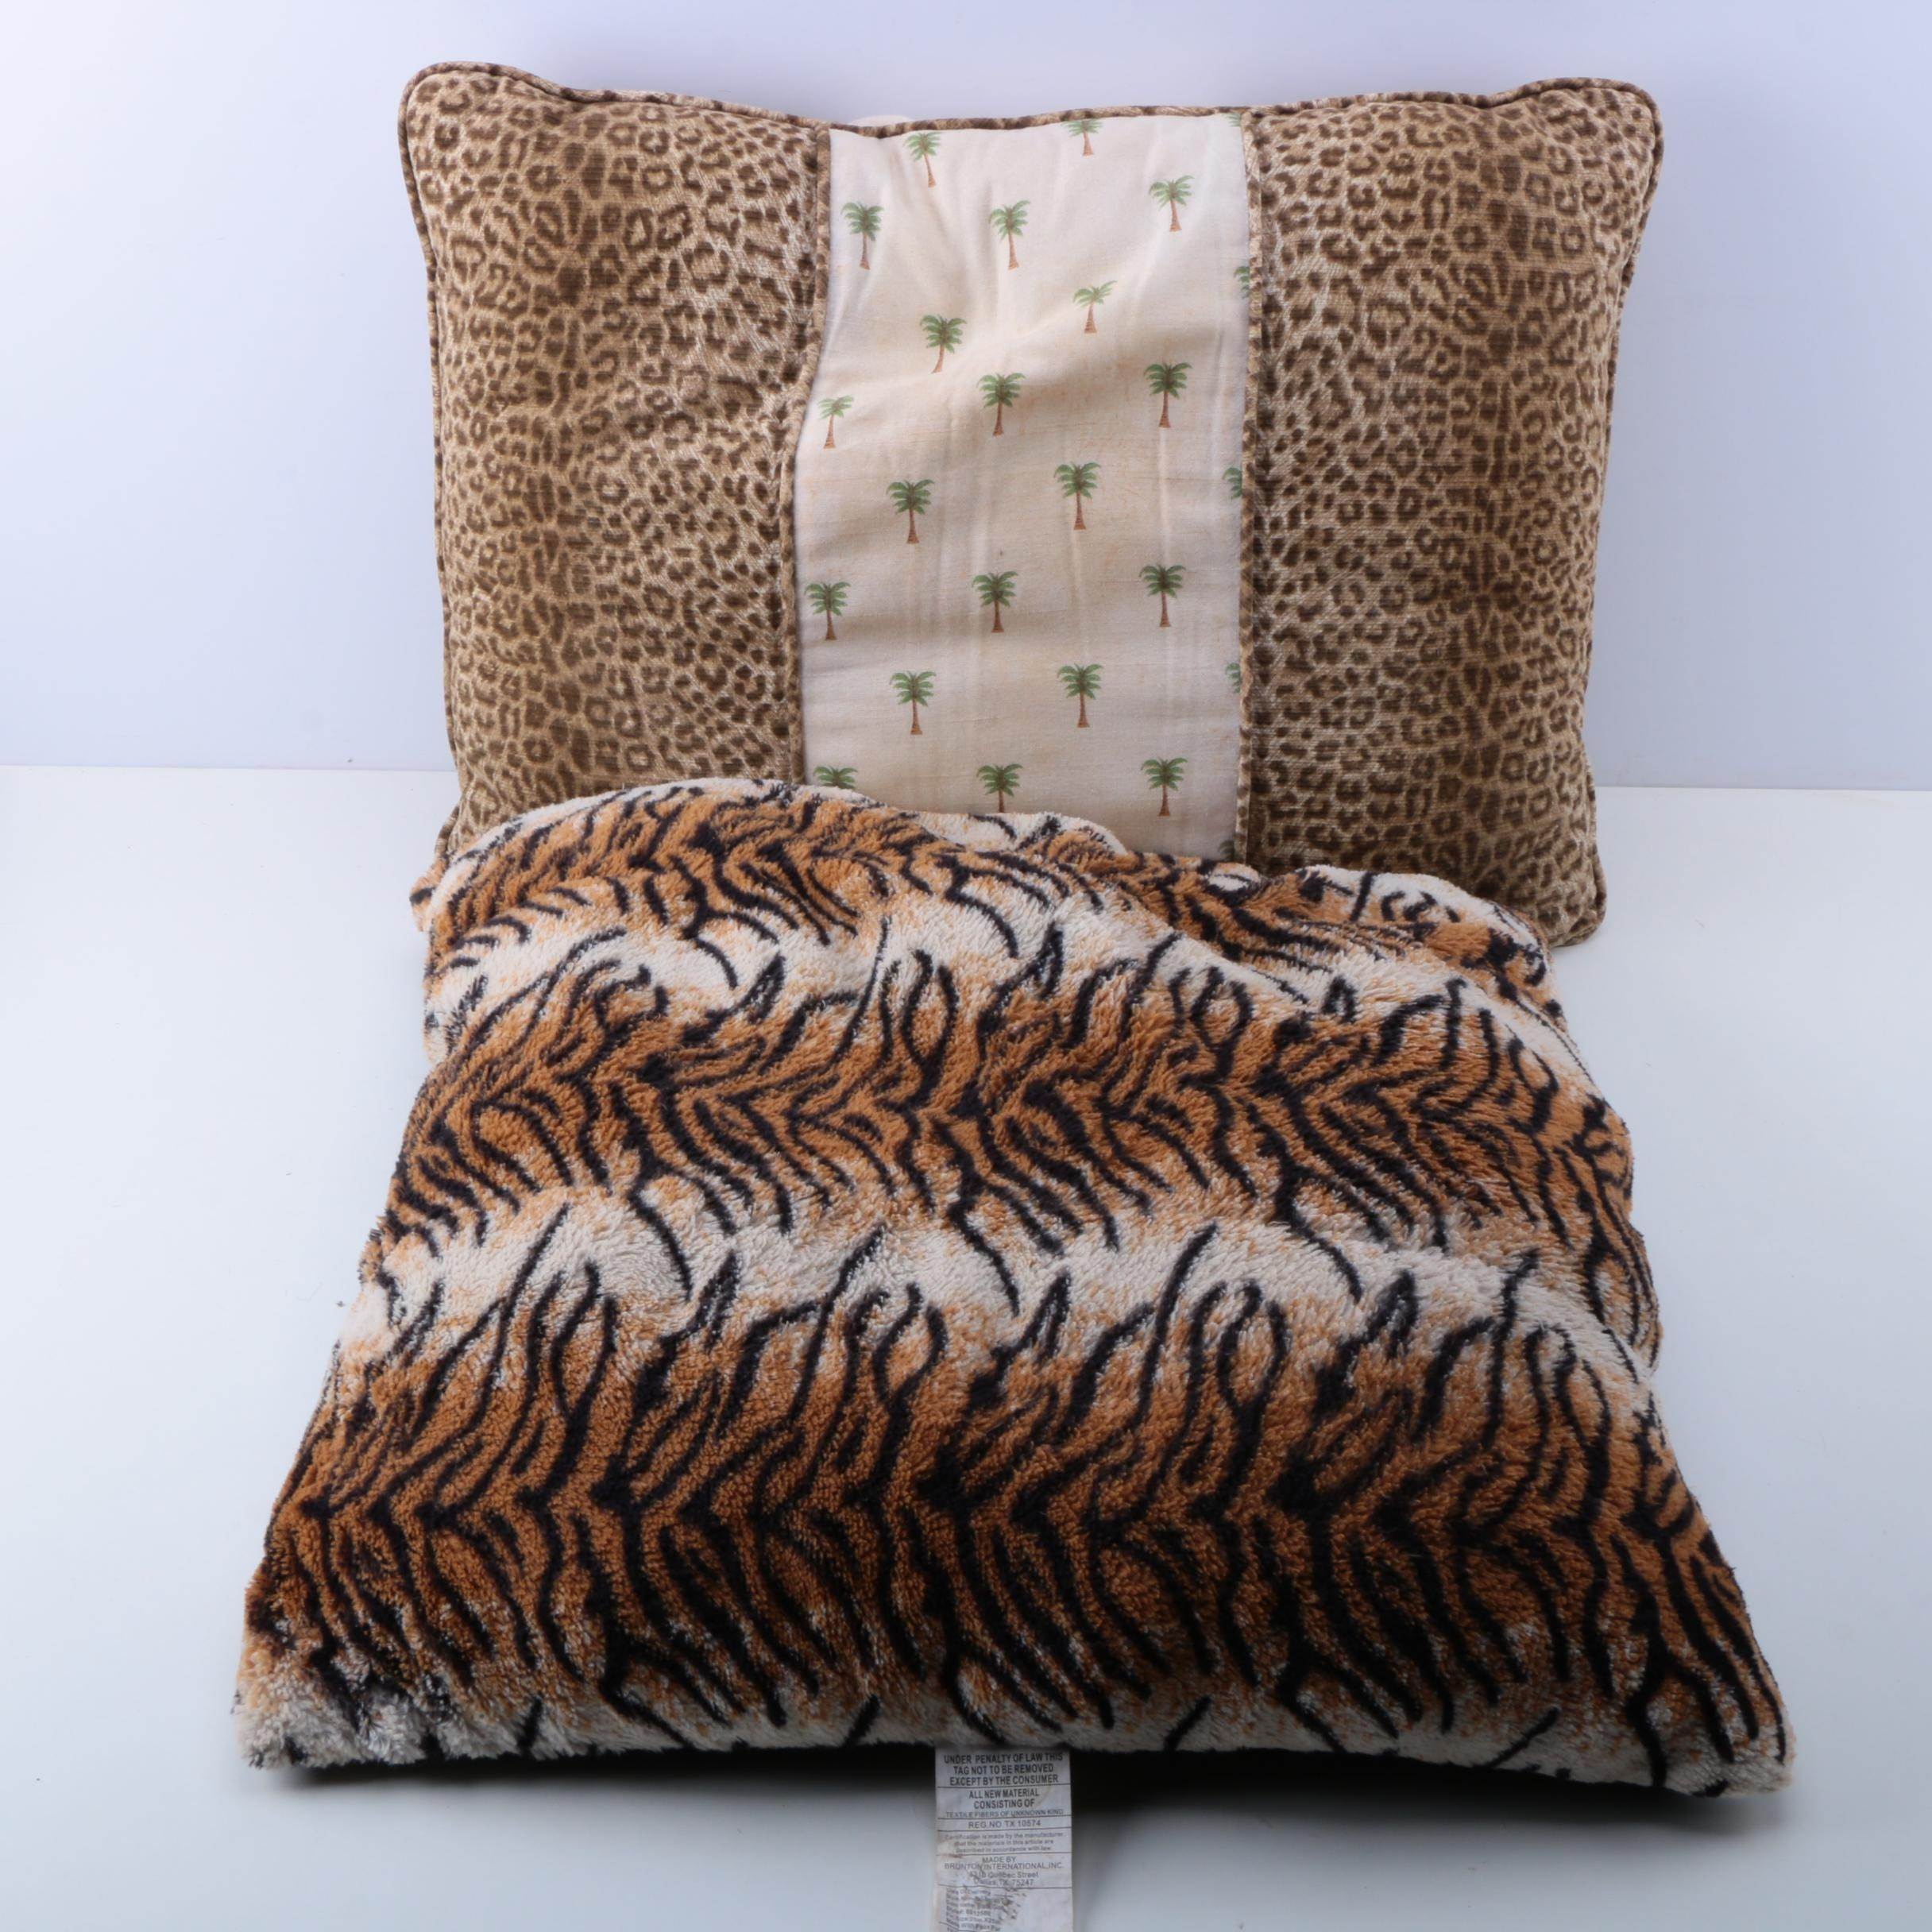 Pairing of Animal Print Throw Pillows